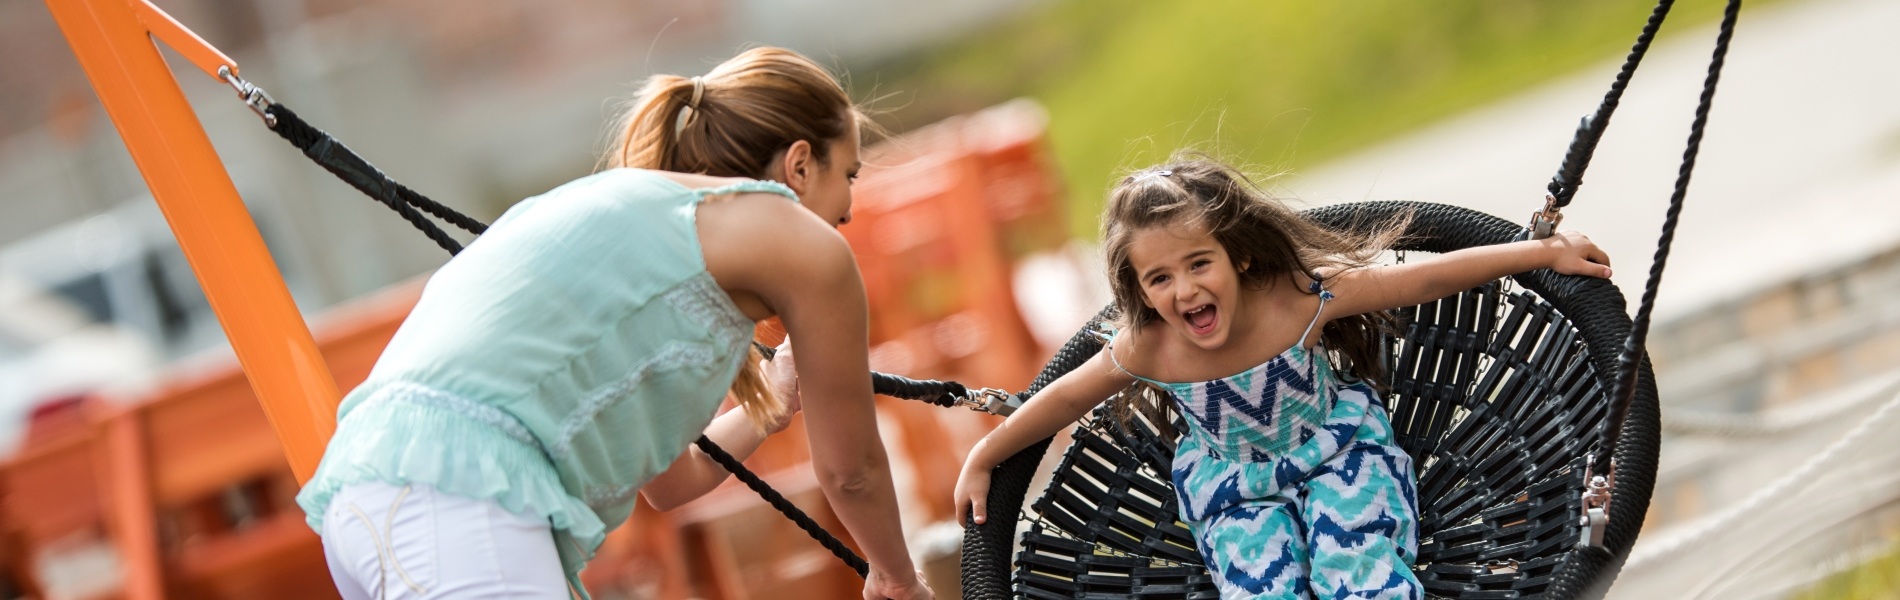 Image of a woman pushing a young girl on a basket swing in a playground